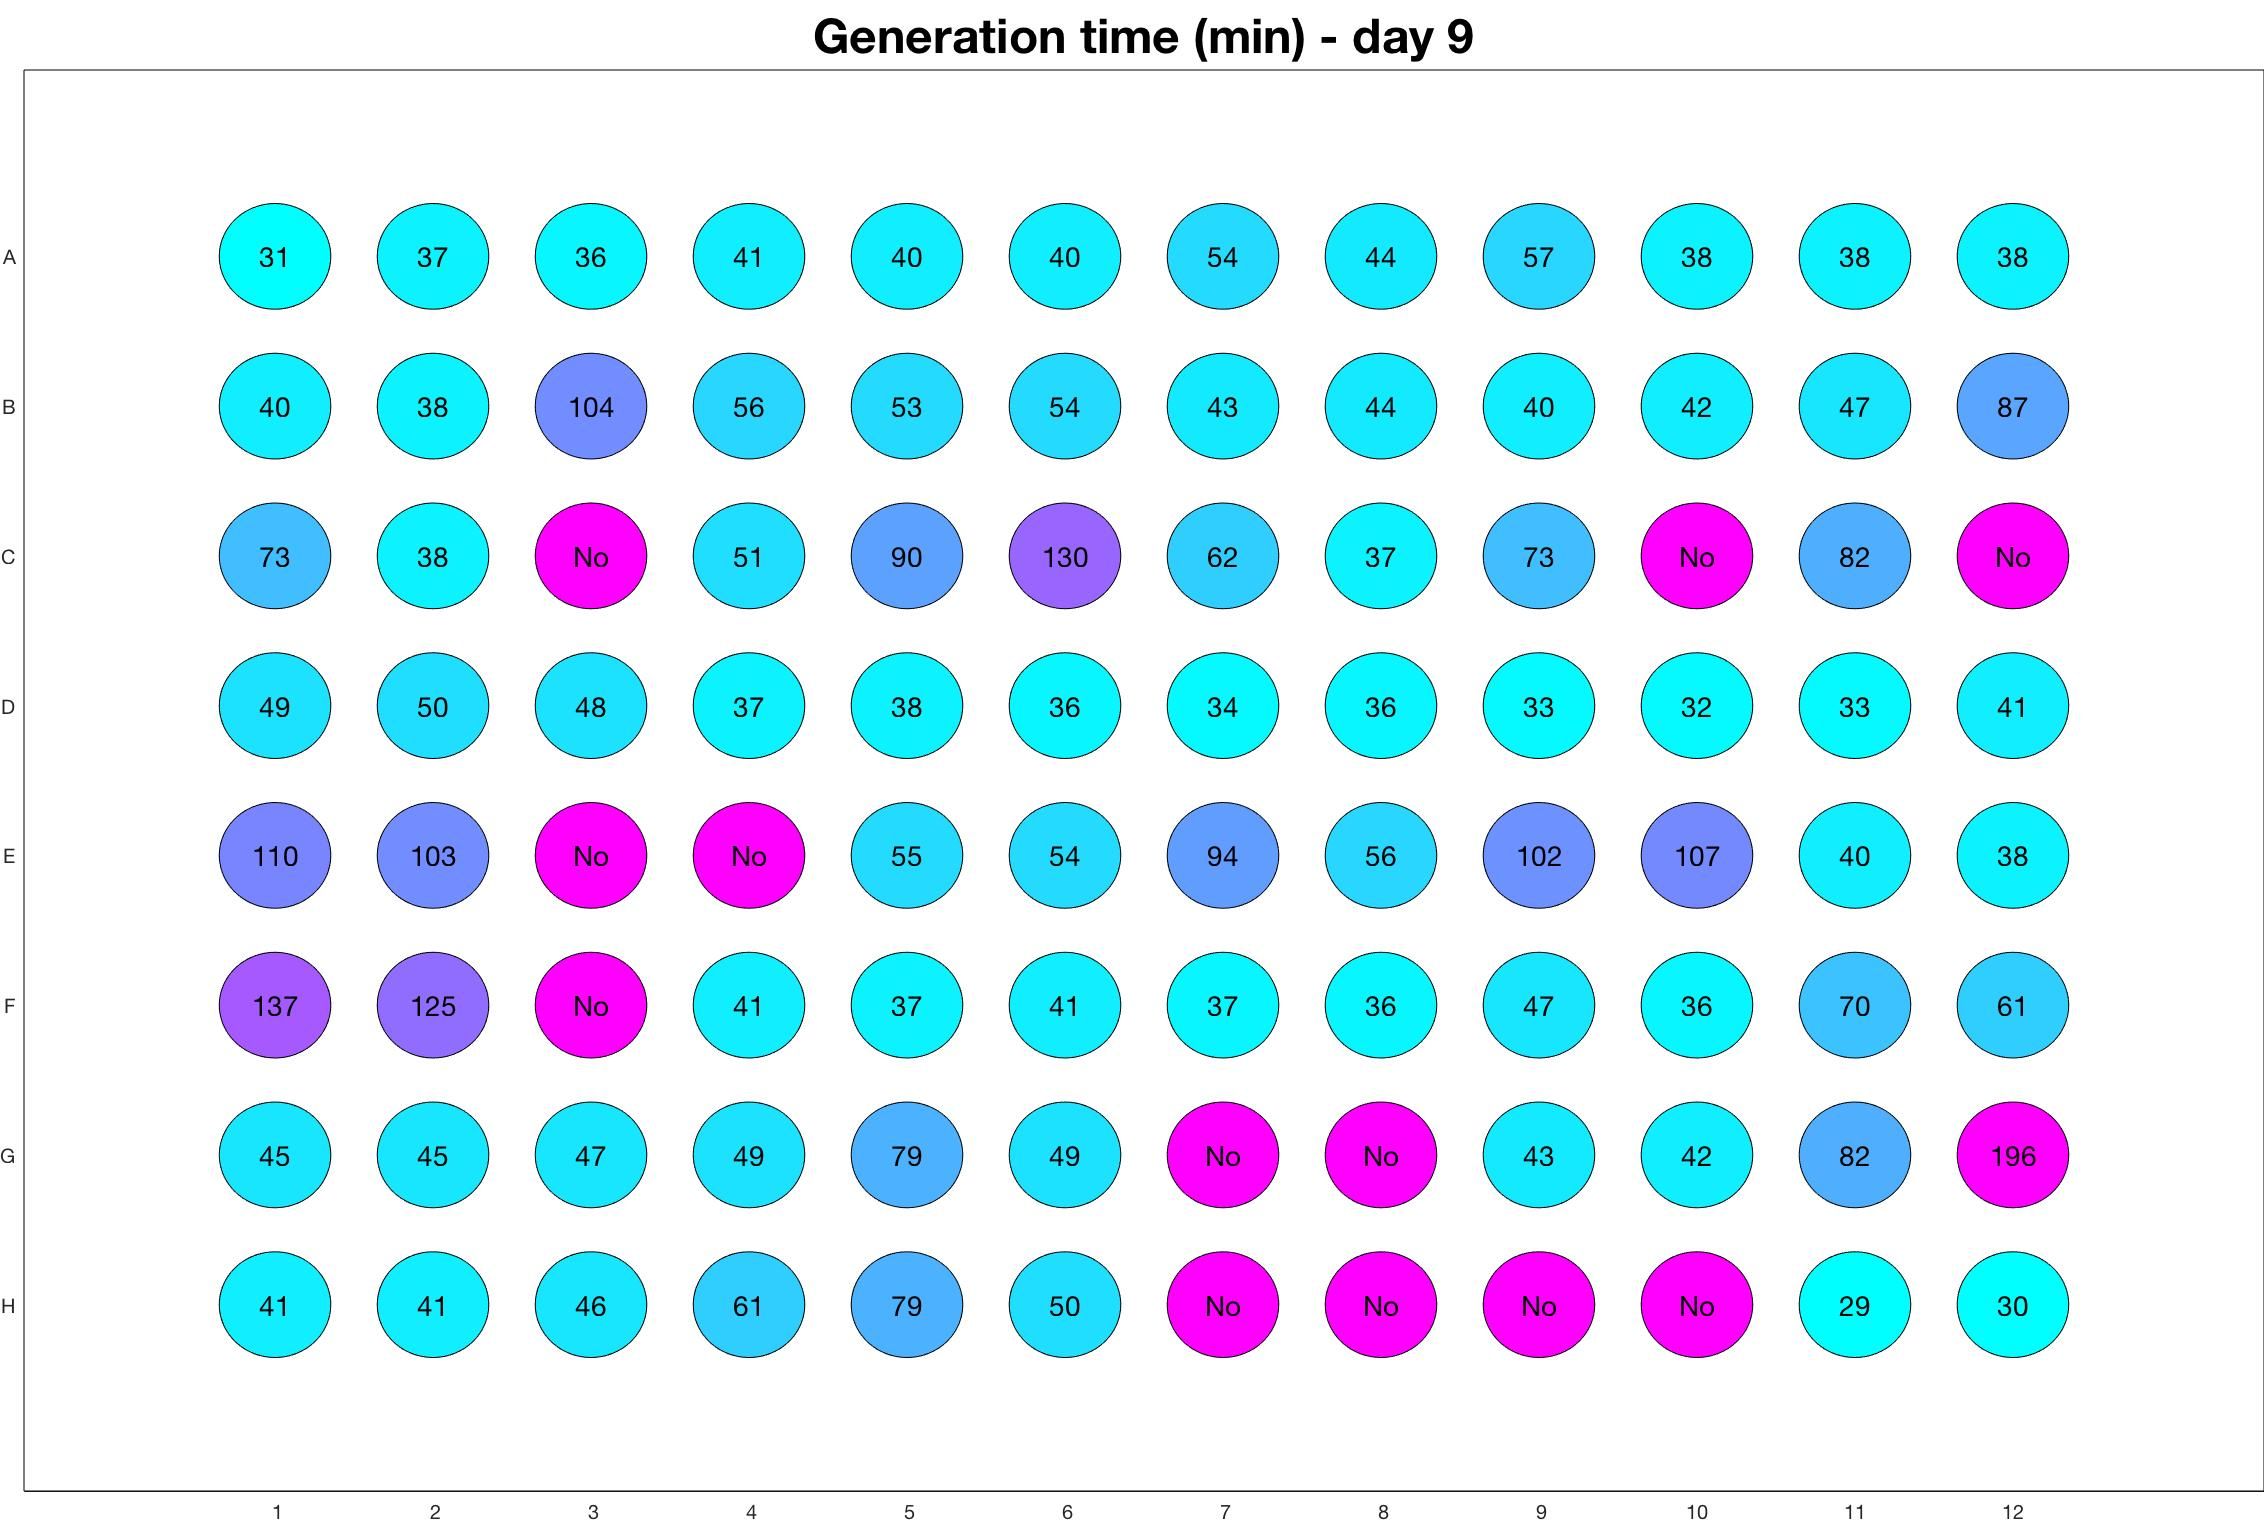 Generation time for day - 9.jpg